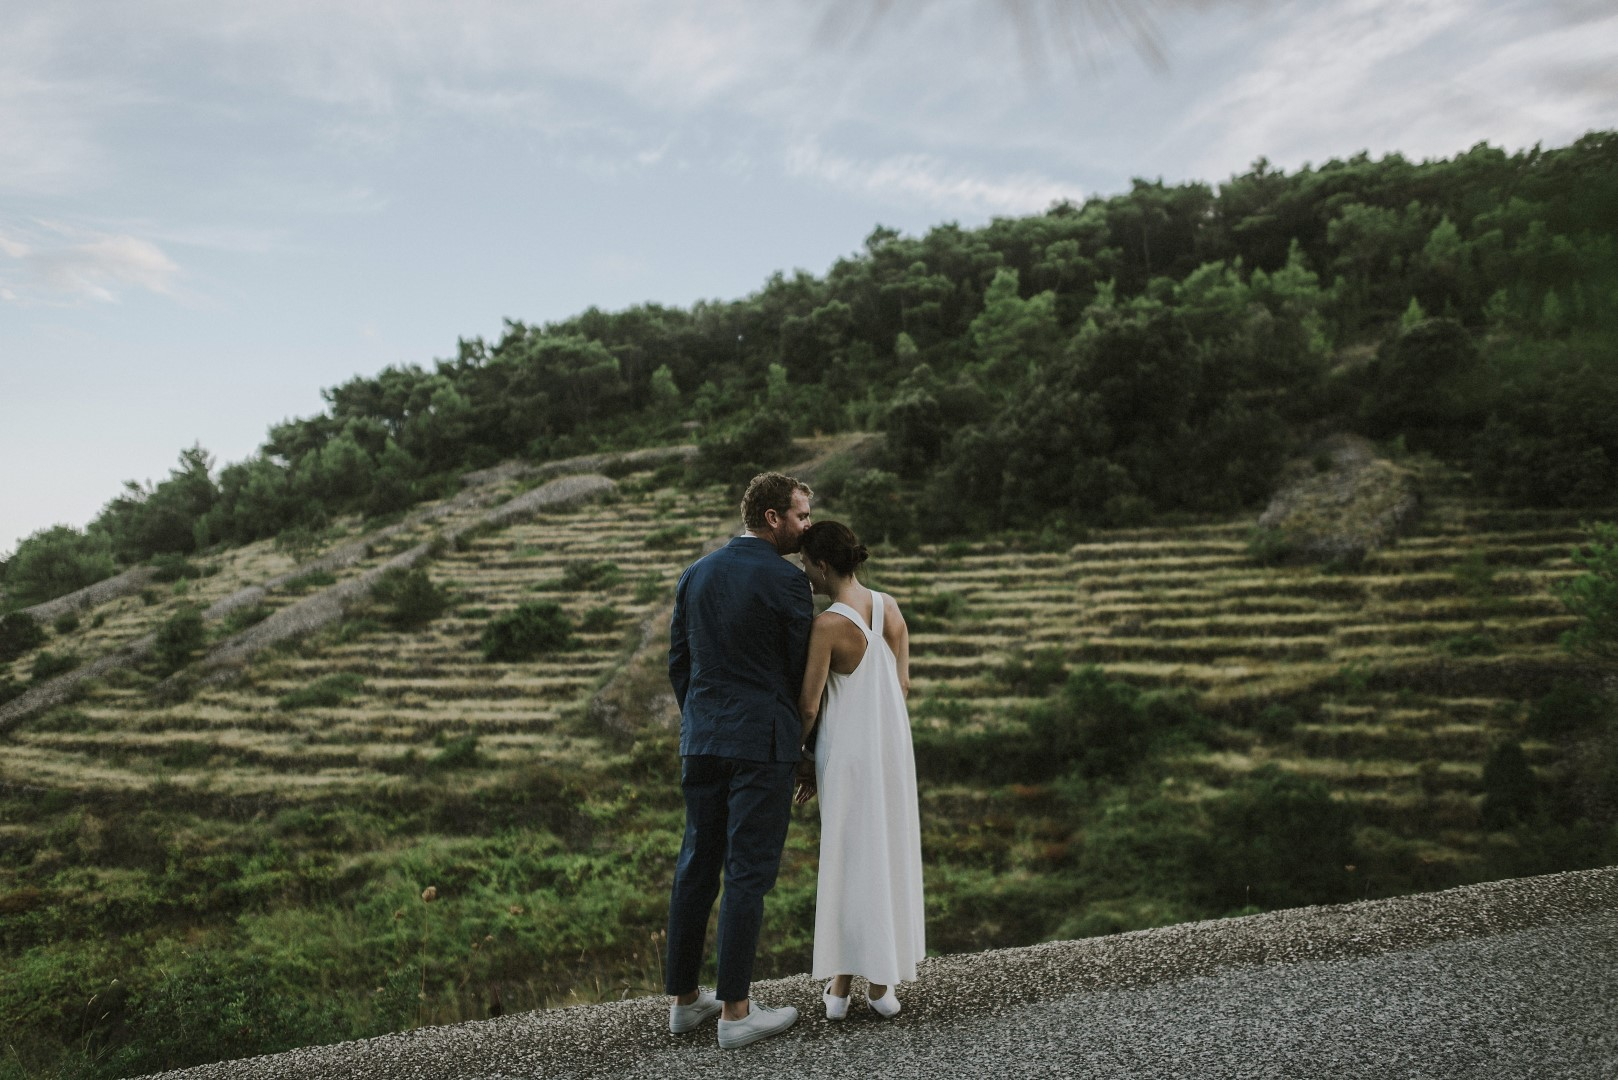 A photo of the happy couple from their photosession with Marko Marinkovic. We can see them from behind as them groom is giving the bride a kiss on the head. In front of them is a stunning mountainous vineyard.